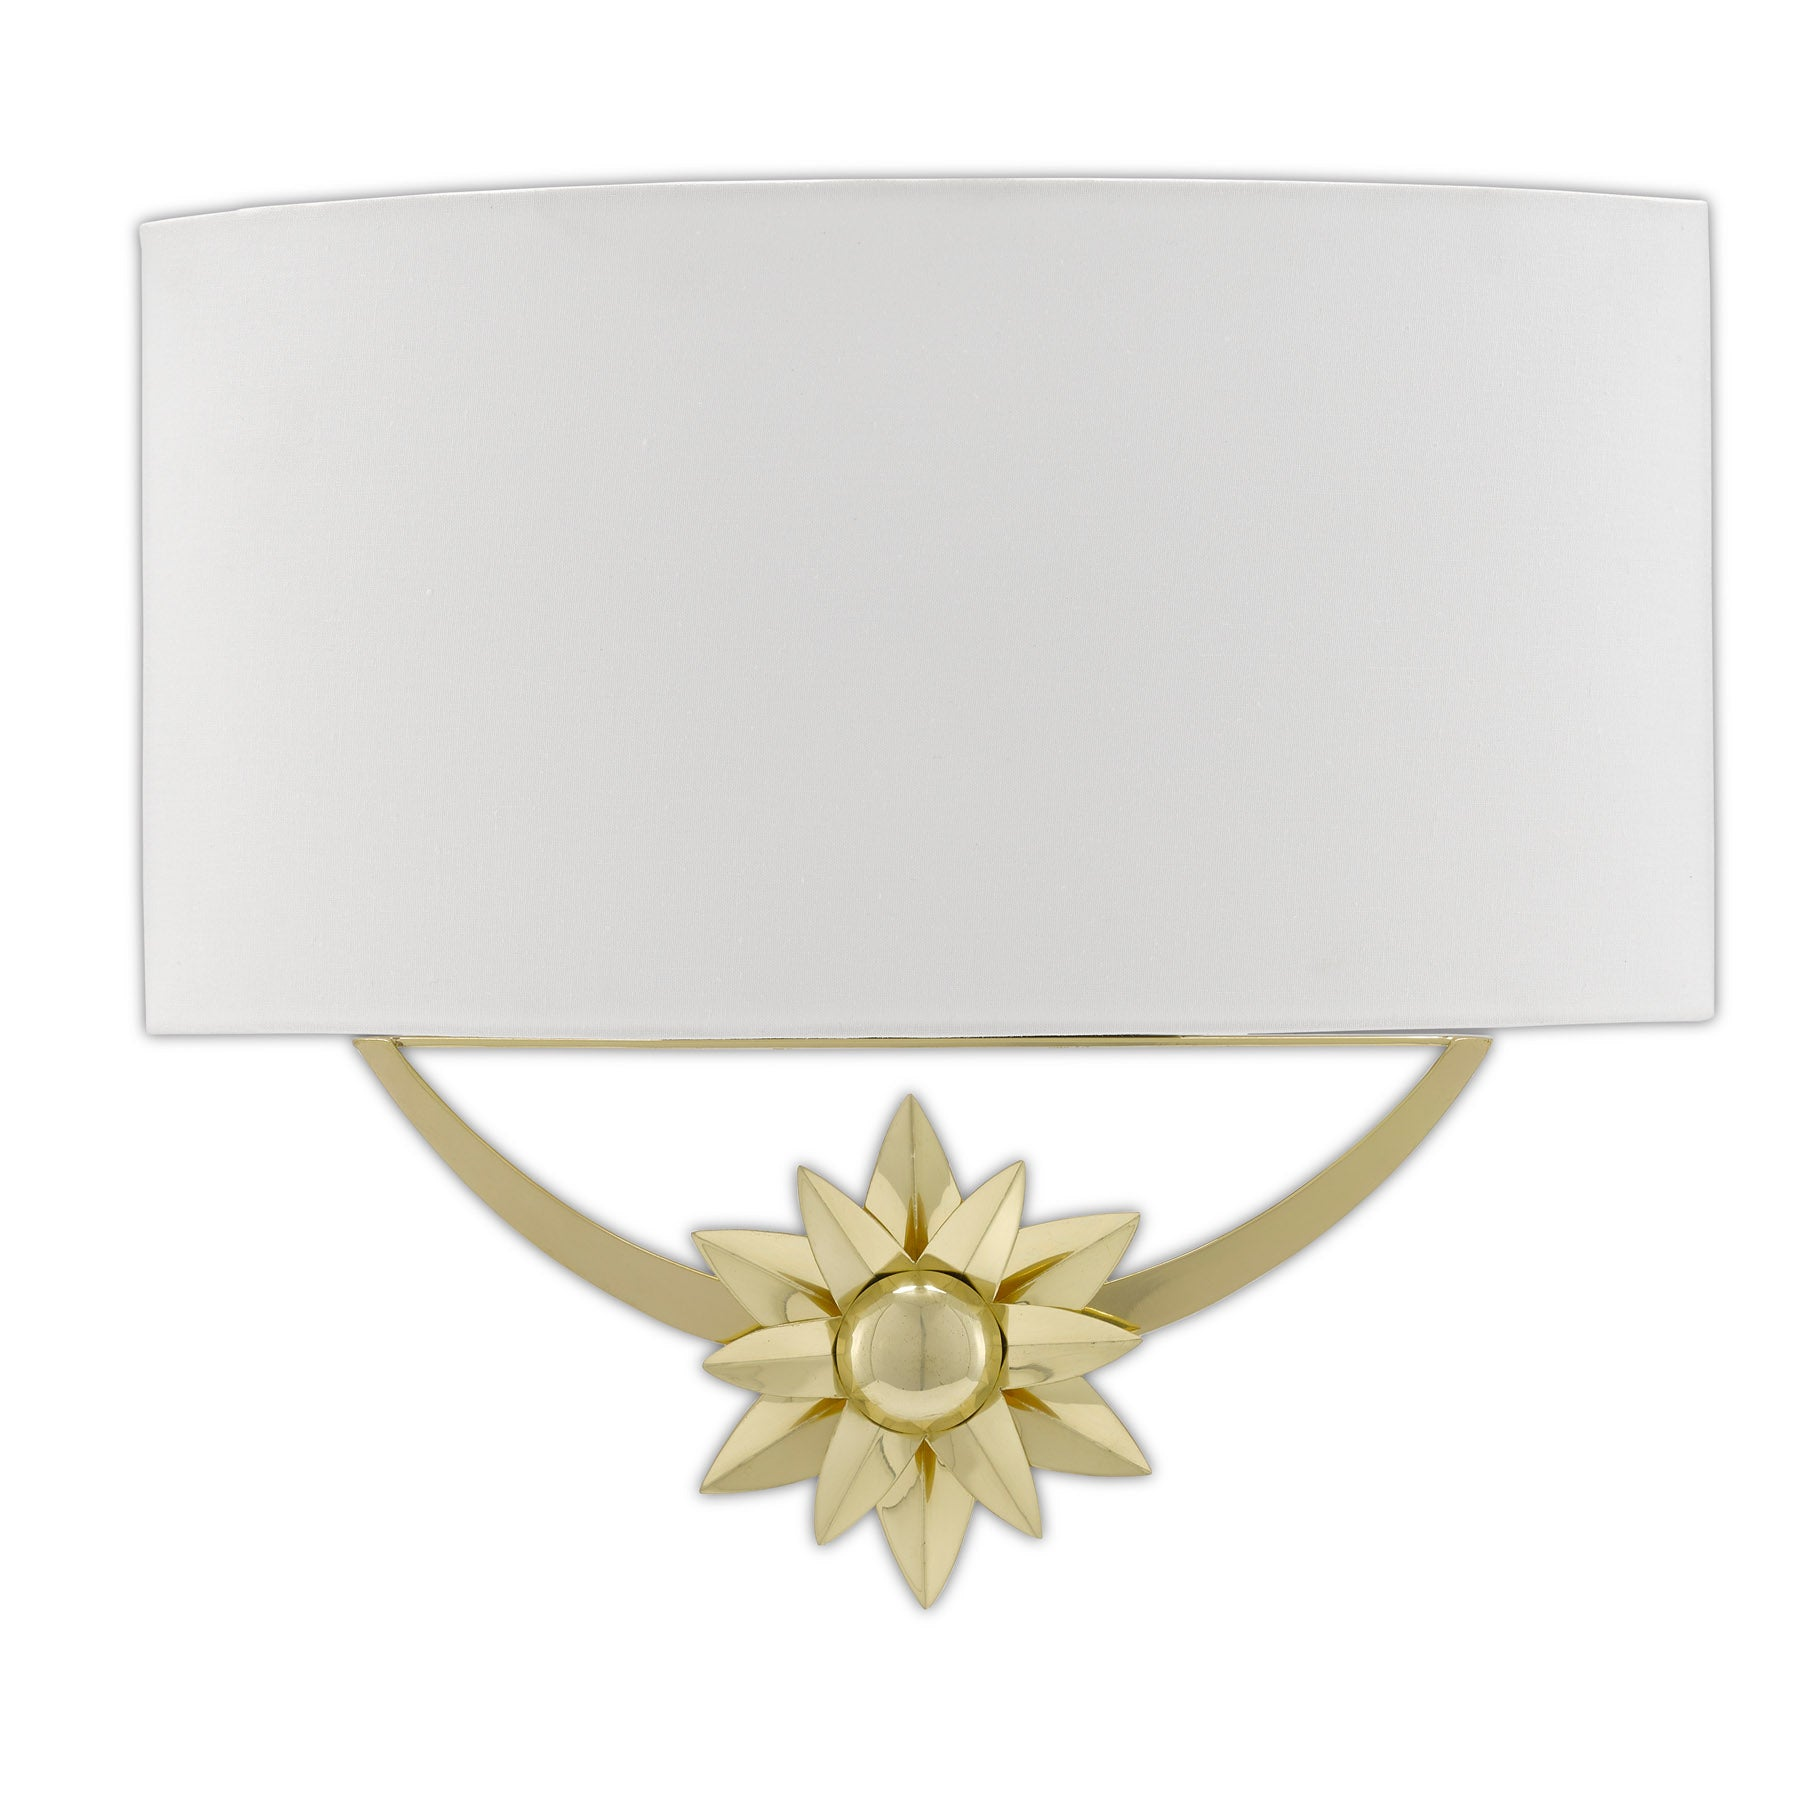 Dayflower Brass Wall Sconce